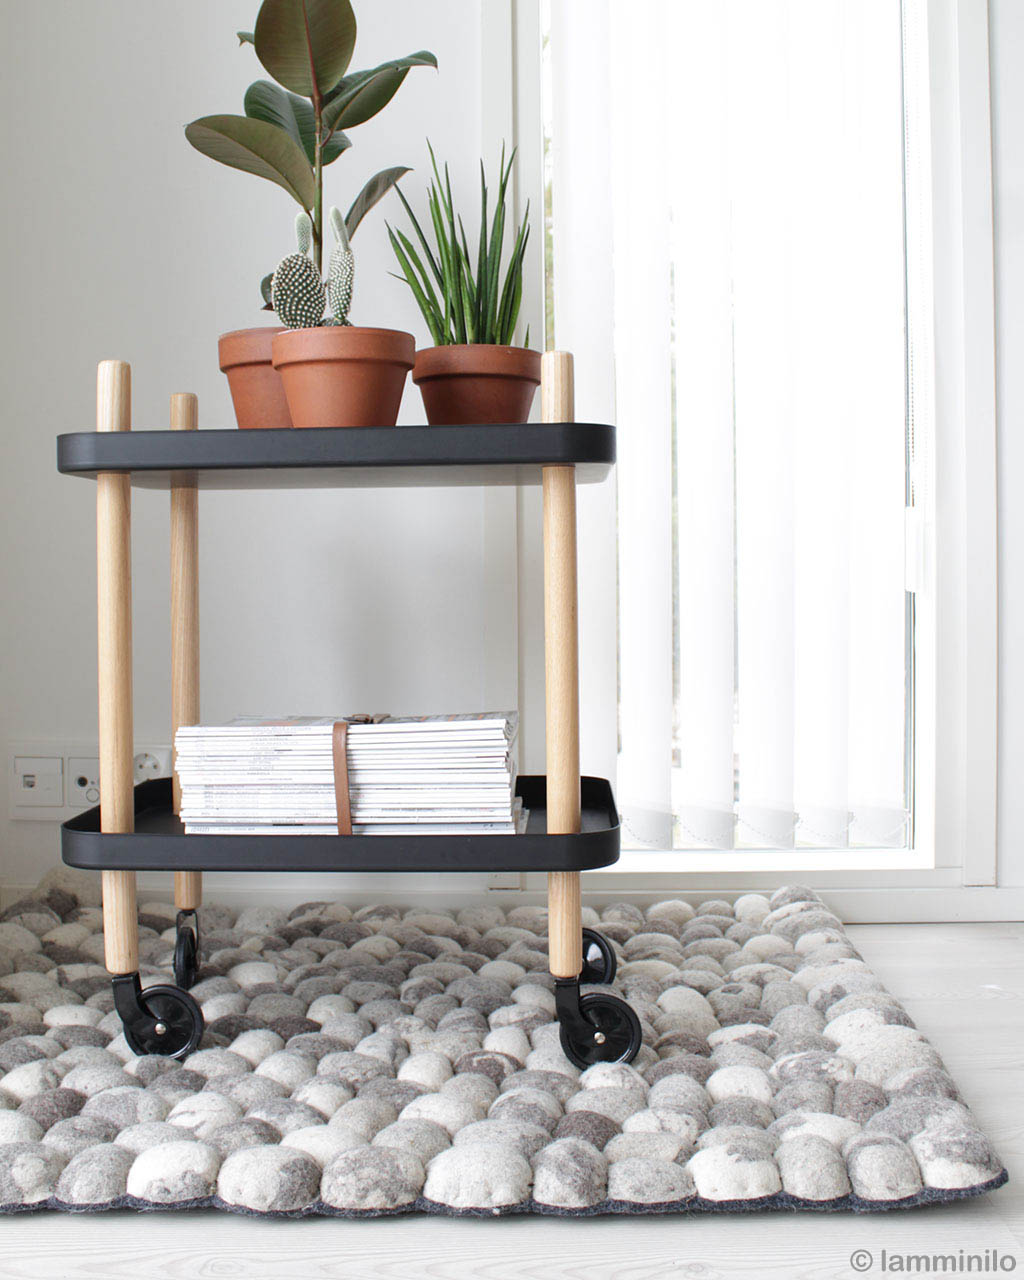 vase on trolly eastern contemporary gray white floral rug